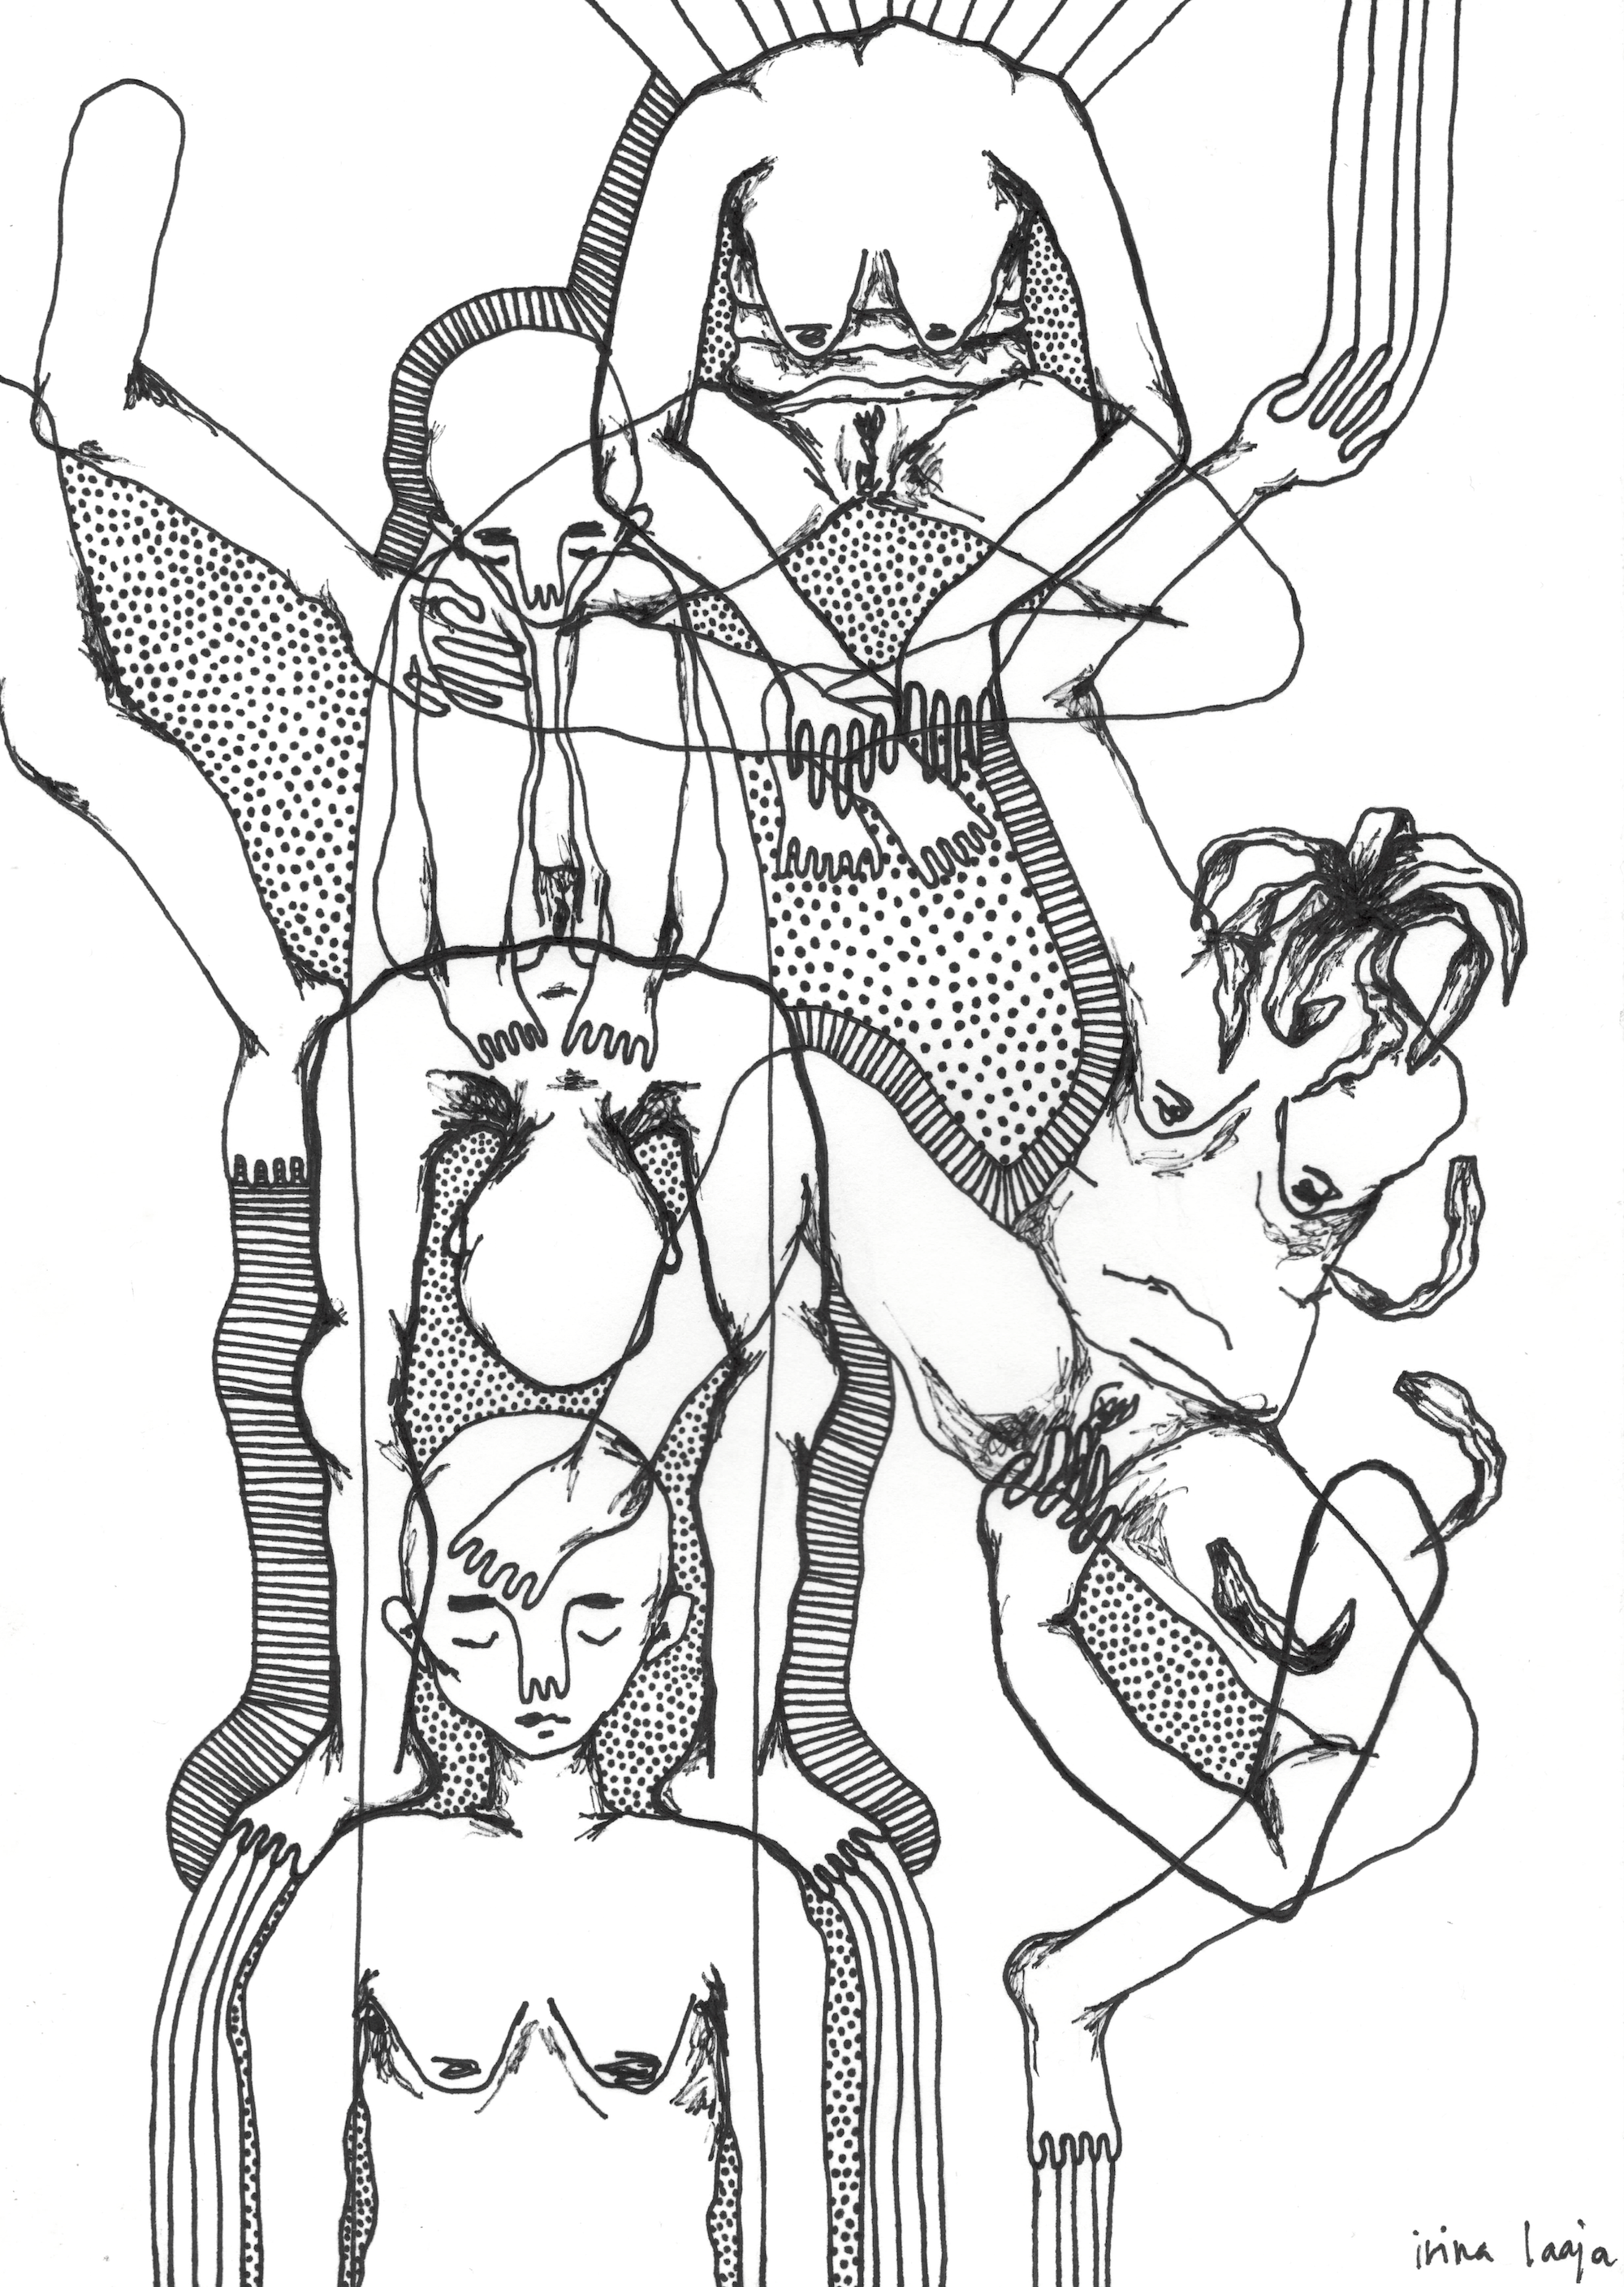 Tower of anxiety